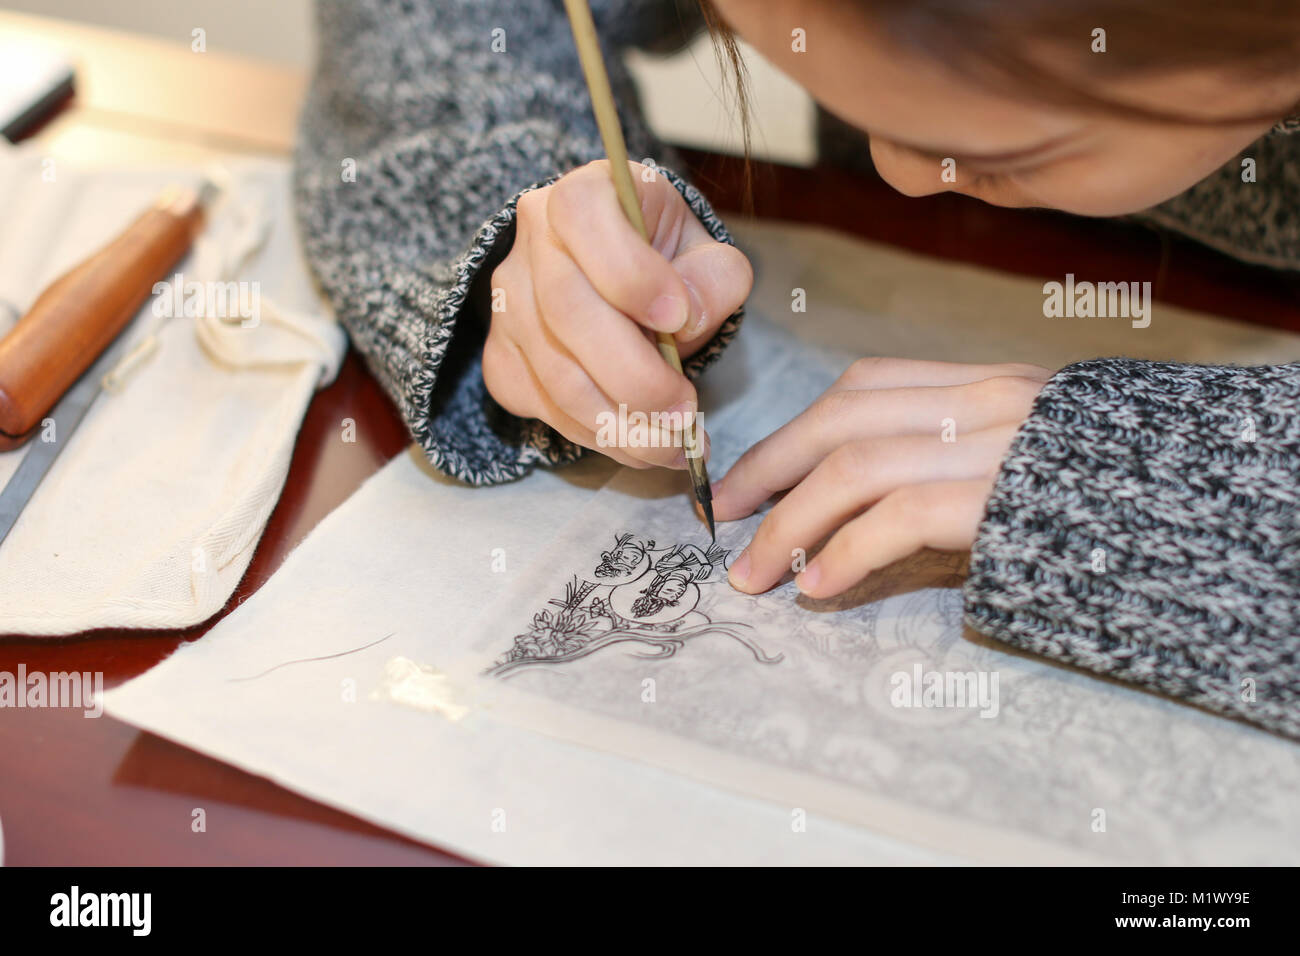 Beijing, China. 3rd Feb, 2018. A student learns Chinese woodblock printing technique at a Shizhuzhai studio in Beijing, - Stock Image